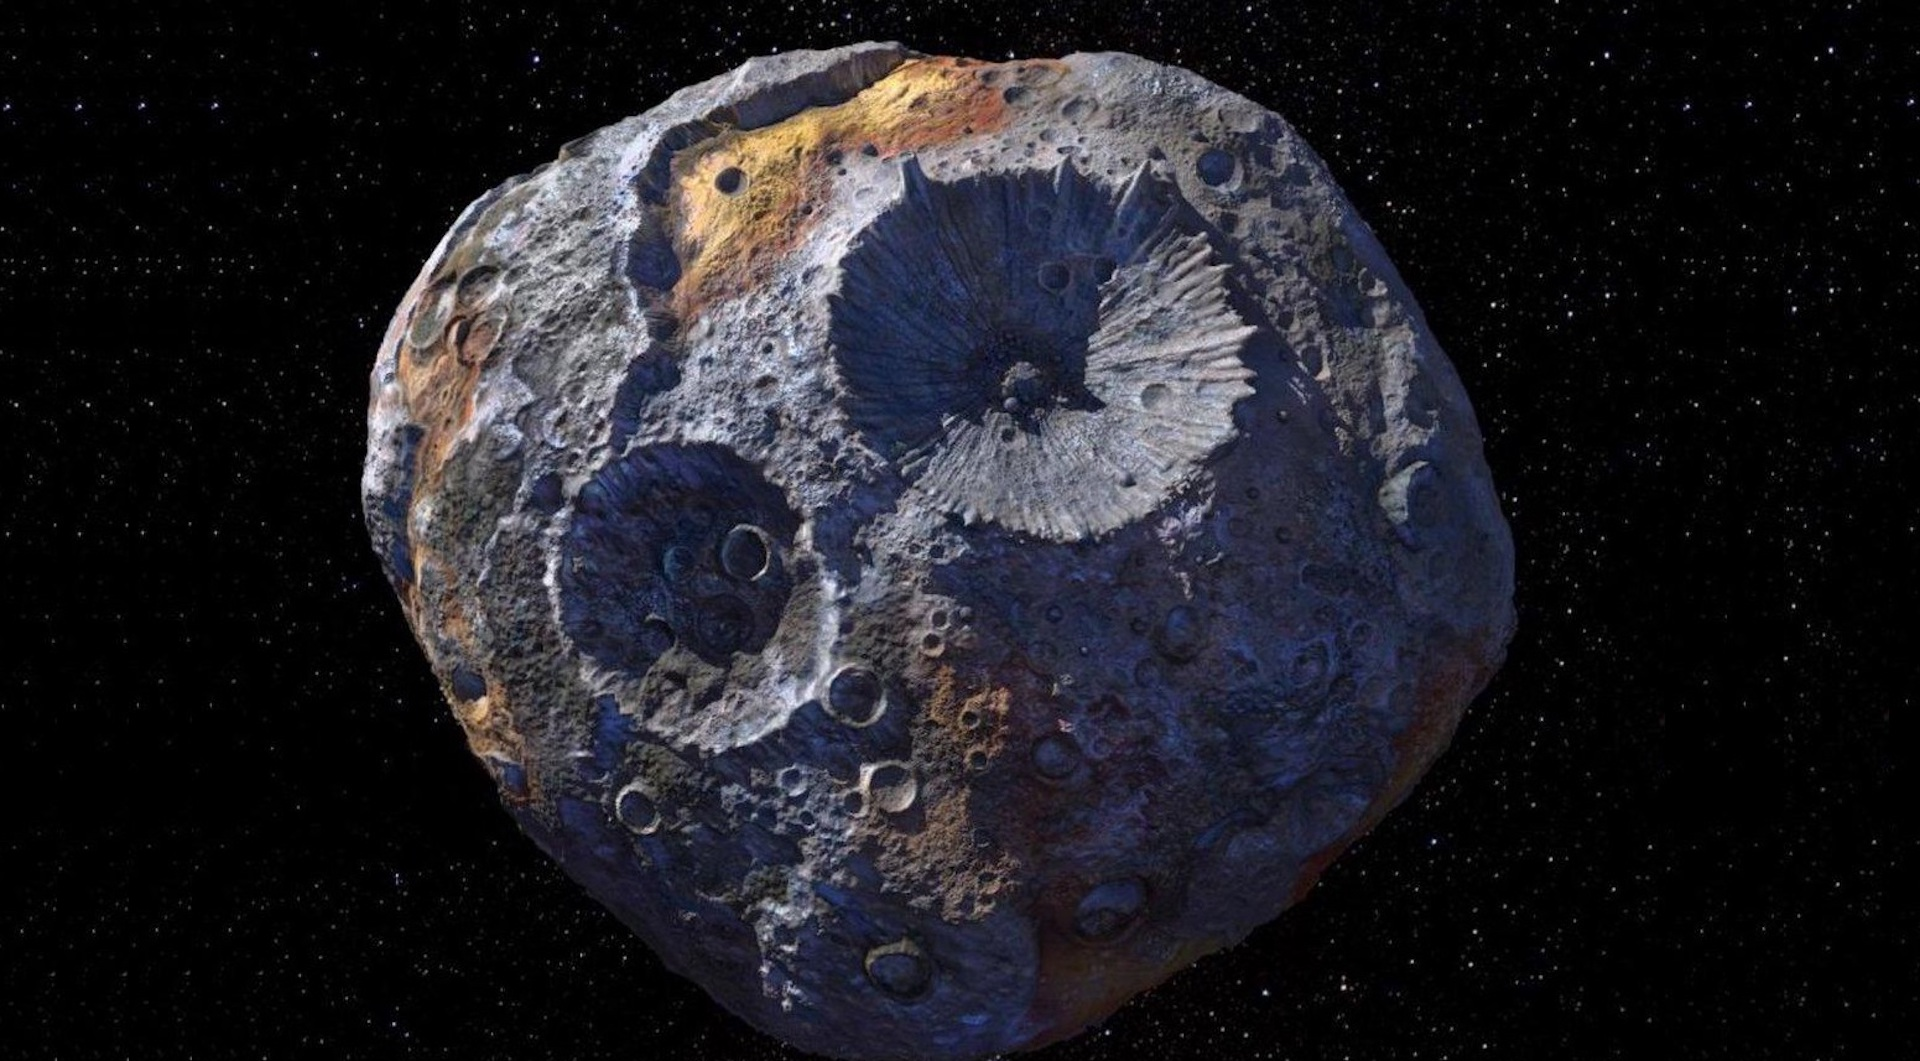 Illustration of asteroid 16 Psyche.